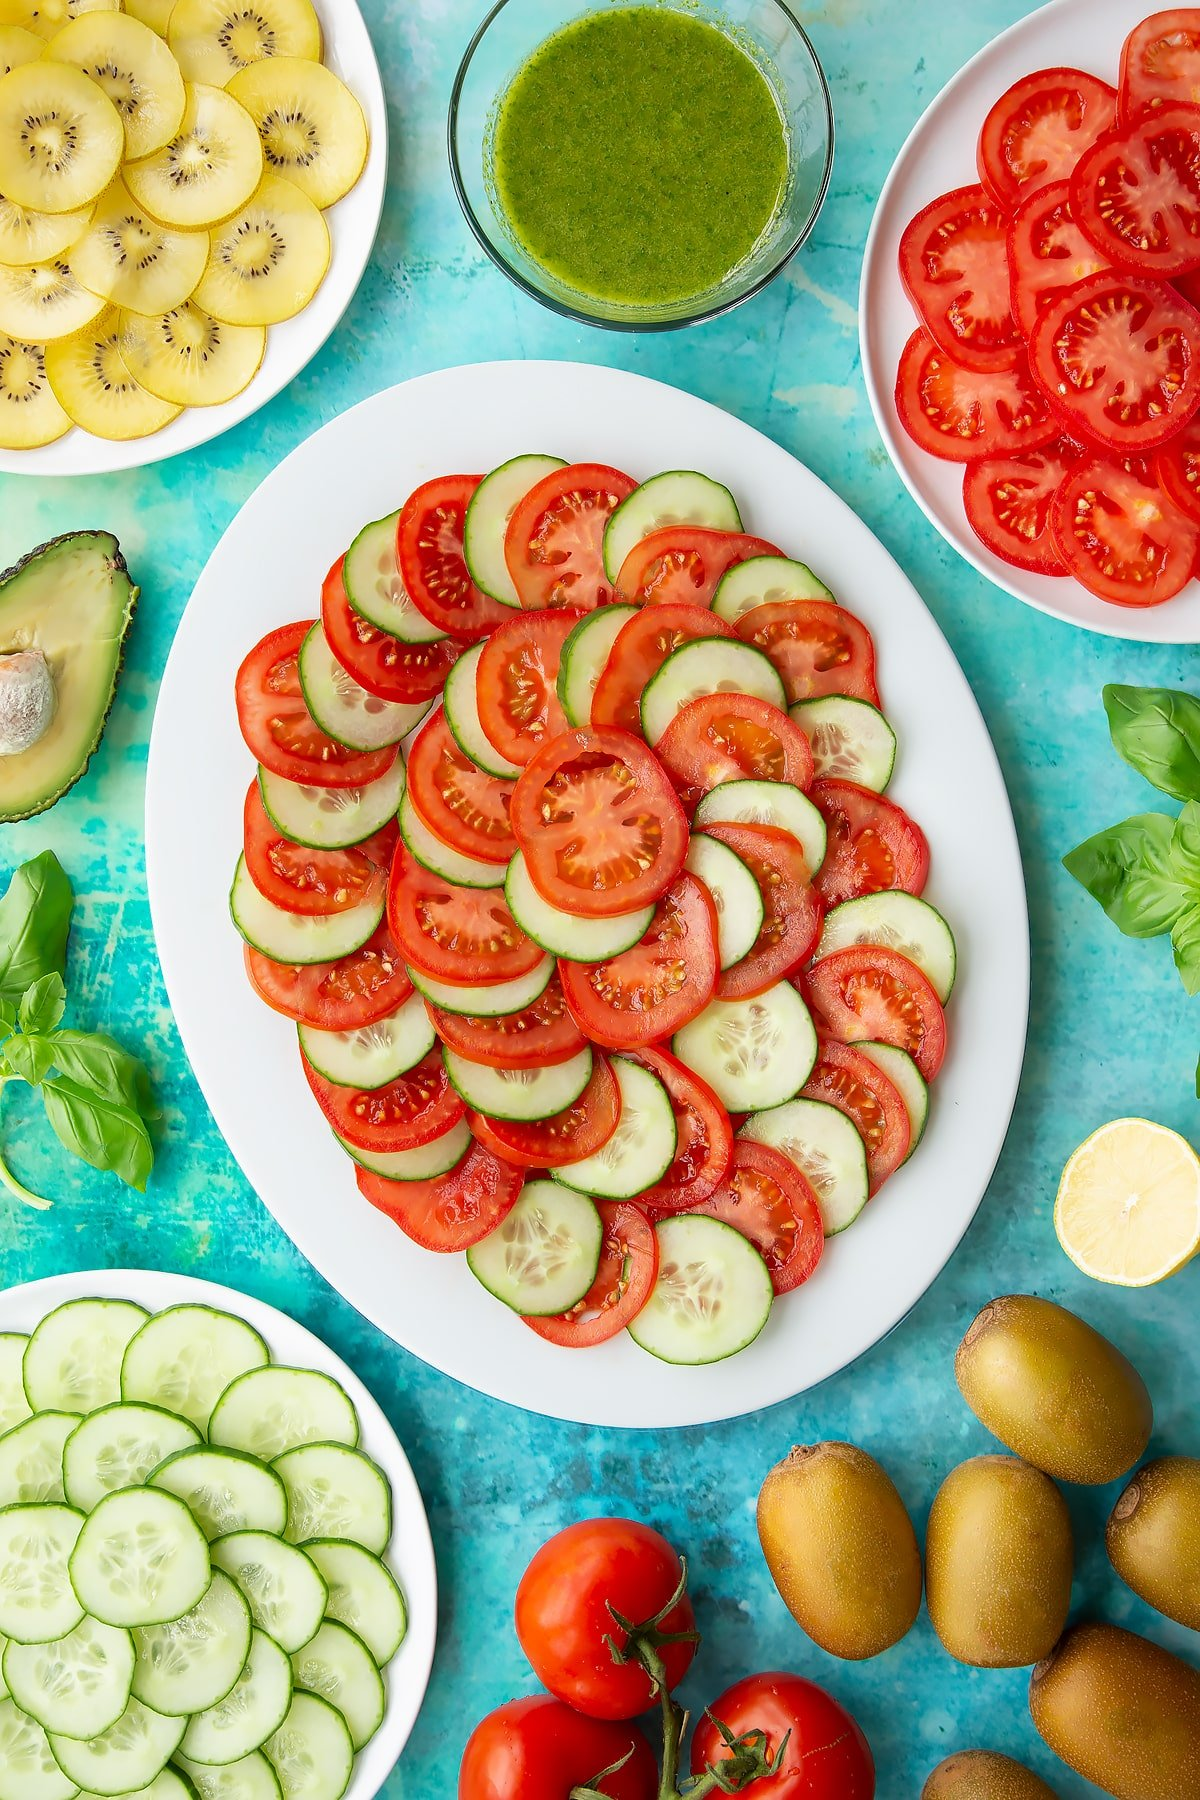 Sliced tomatoes and cucumber on a white oval plate. Ingredients to make a kiwi feta salad surround the platter.